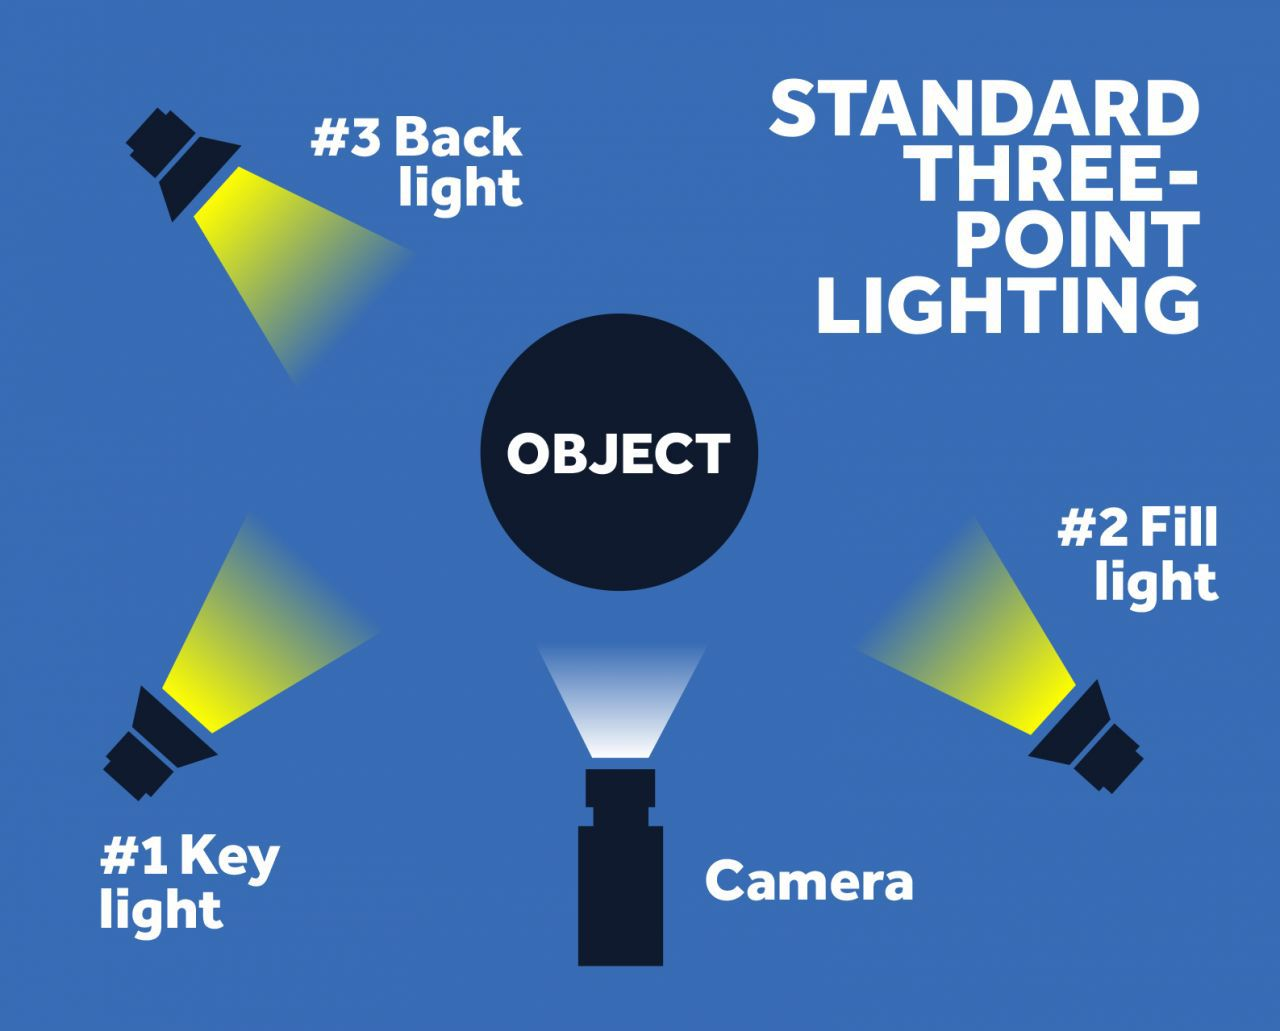 Best Lighting Kits 3pt 1280x1031.5816005041 c default - How to shoot video like a pro and make your brand benefit more.